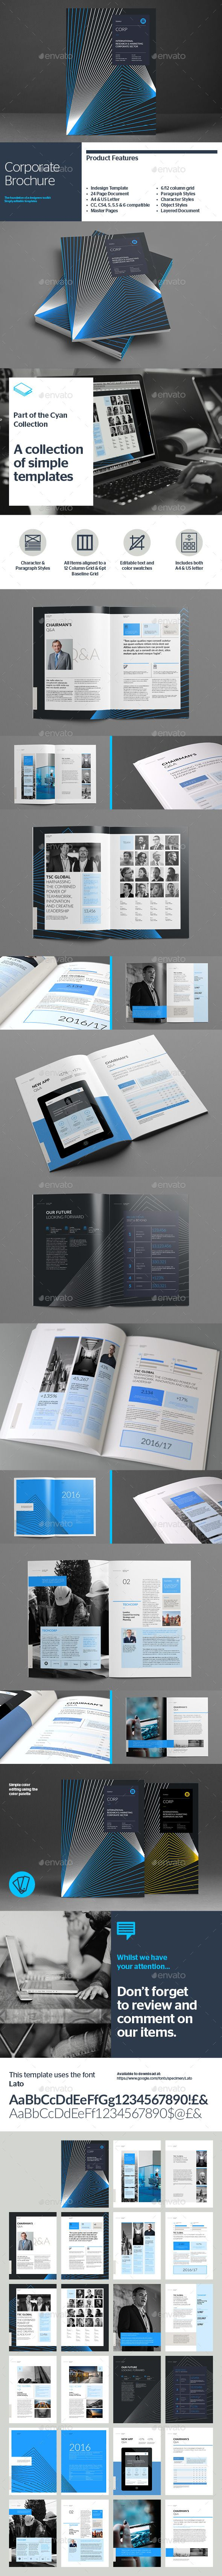 Awesome 1 Year Experienced Software Developer Resume Sample Tall 10 Best Resume Designs Flat 1099 Template Word 11 Vuze Search Templates Young 1st Job Resume Template Green2 Page Resume Format 20 Best Images About Template   11x17 Booklet Brochure On ..